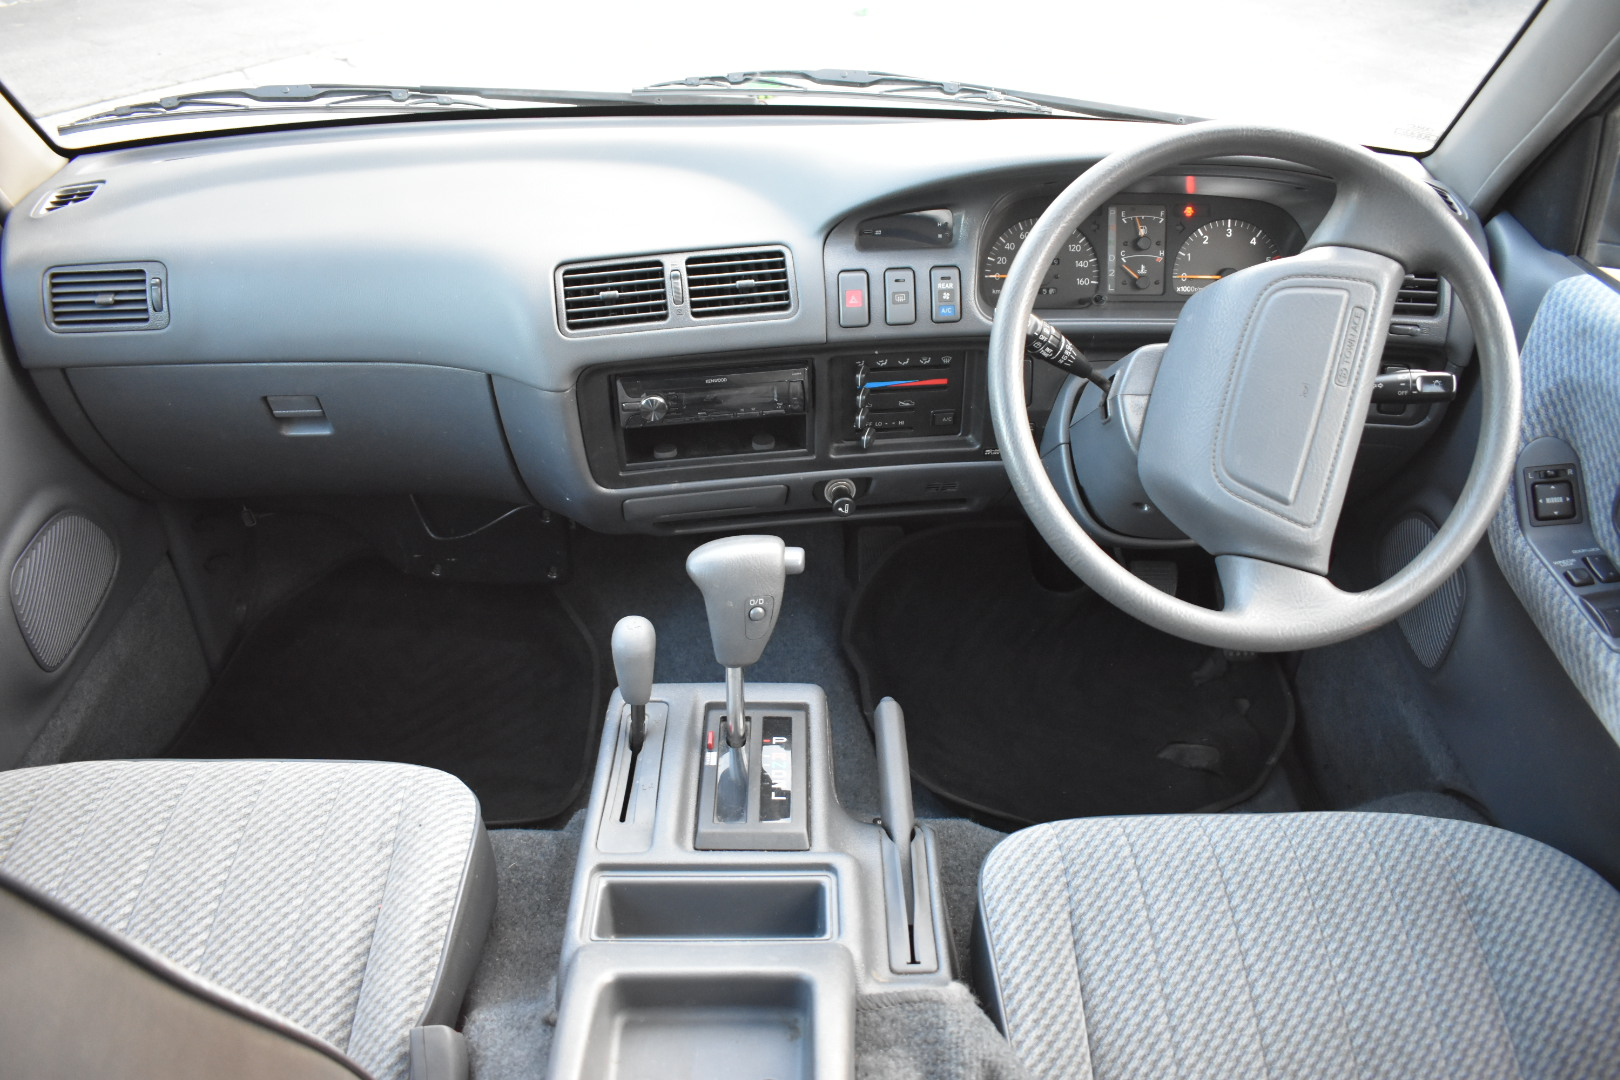 1993 Toyota Town Ace Yota Imports